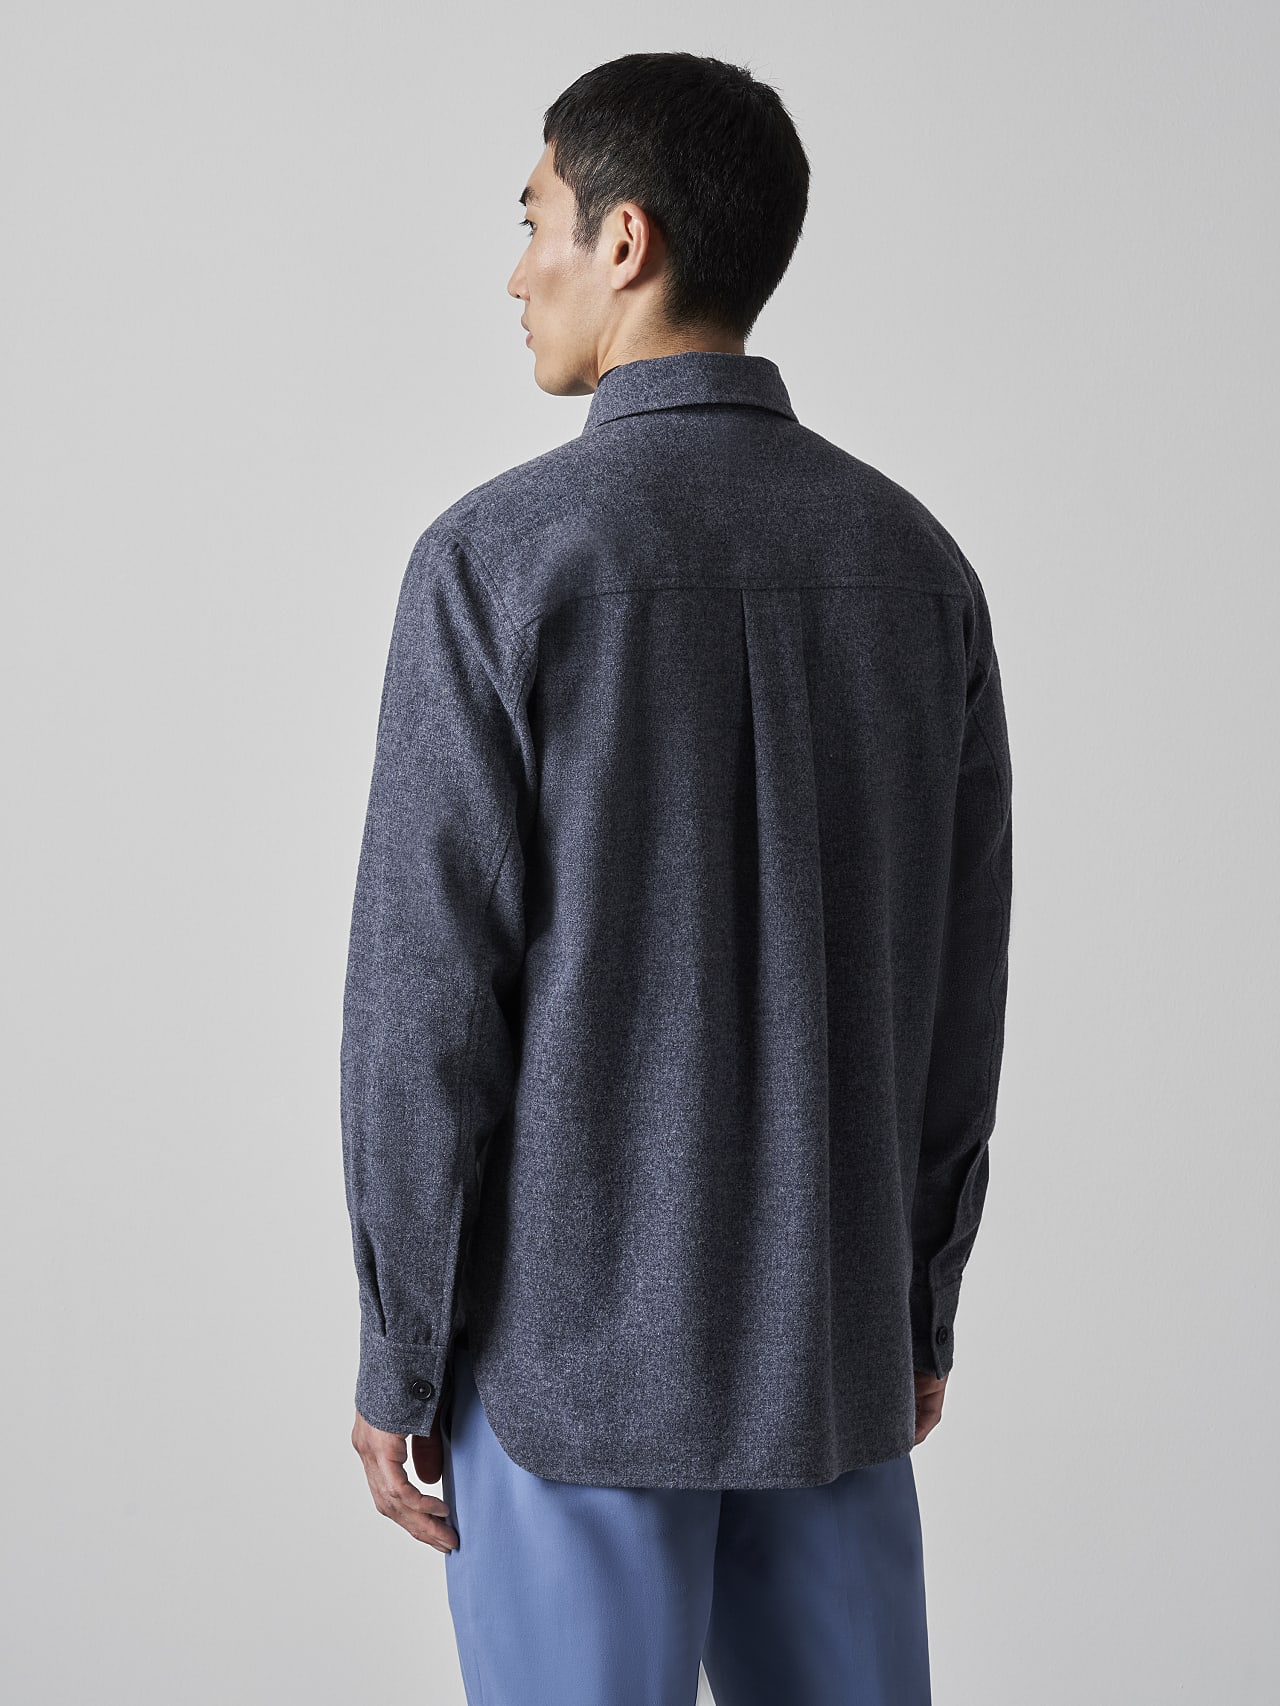 WOVER V1.Y5.02 Wool Over-Shirt navy Front Main Alpha Tauri